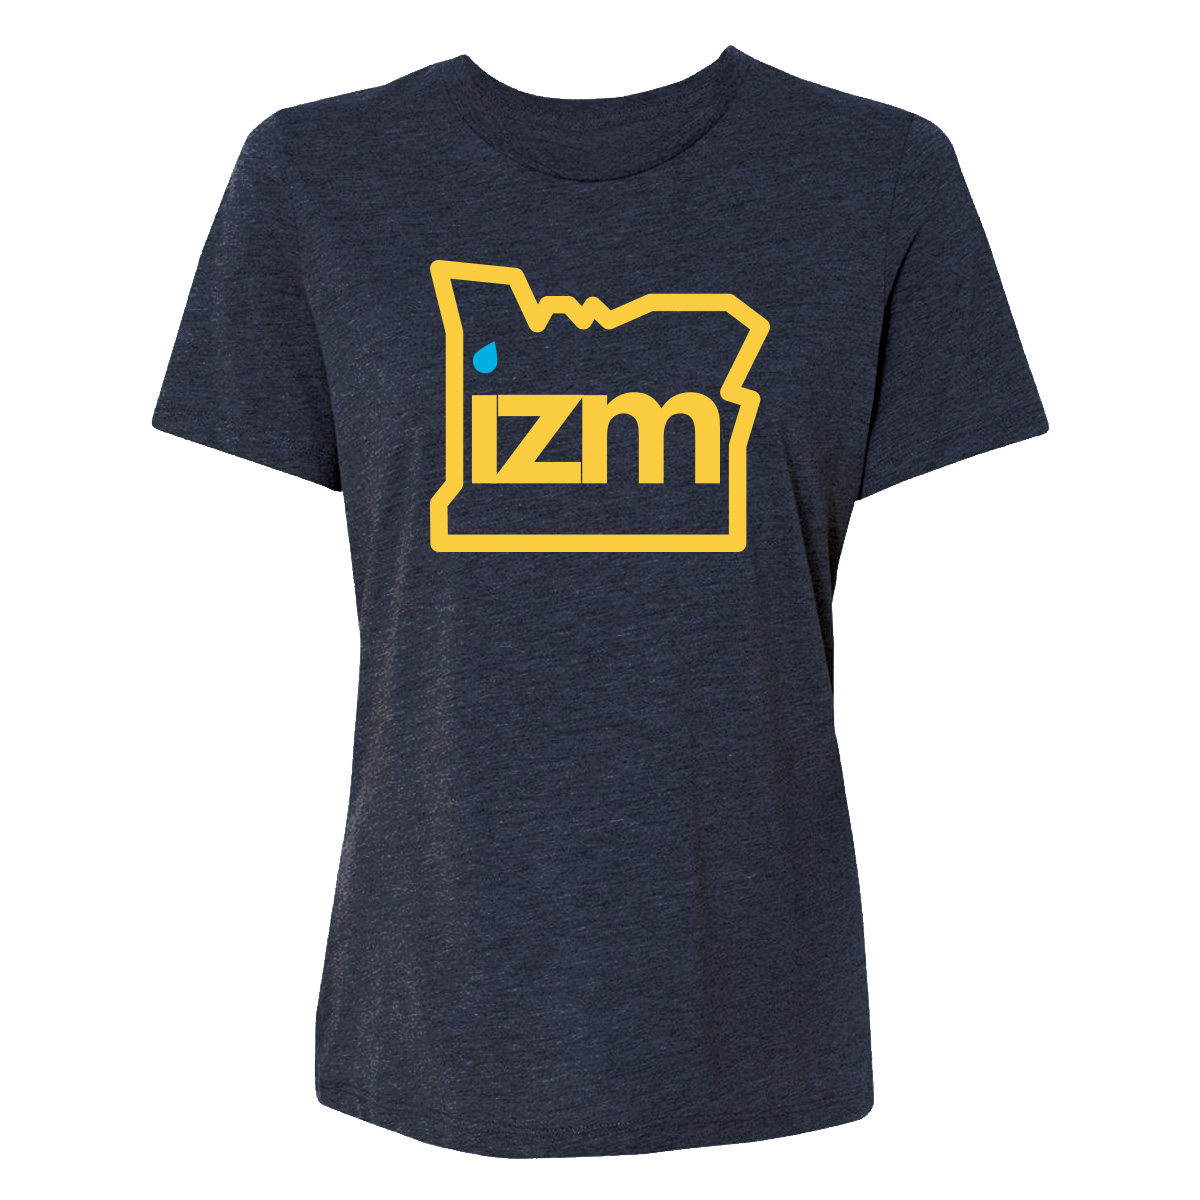 oregonizm-product-tshirt-womens-stateizm-navy